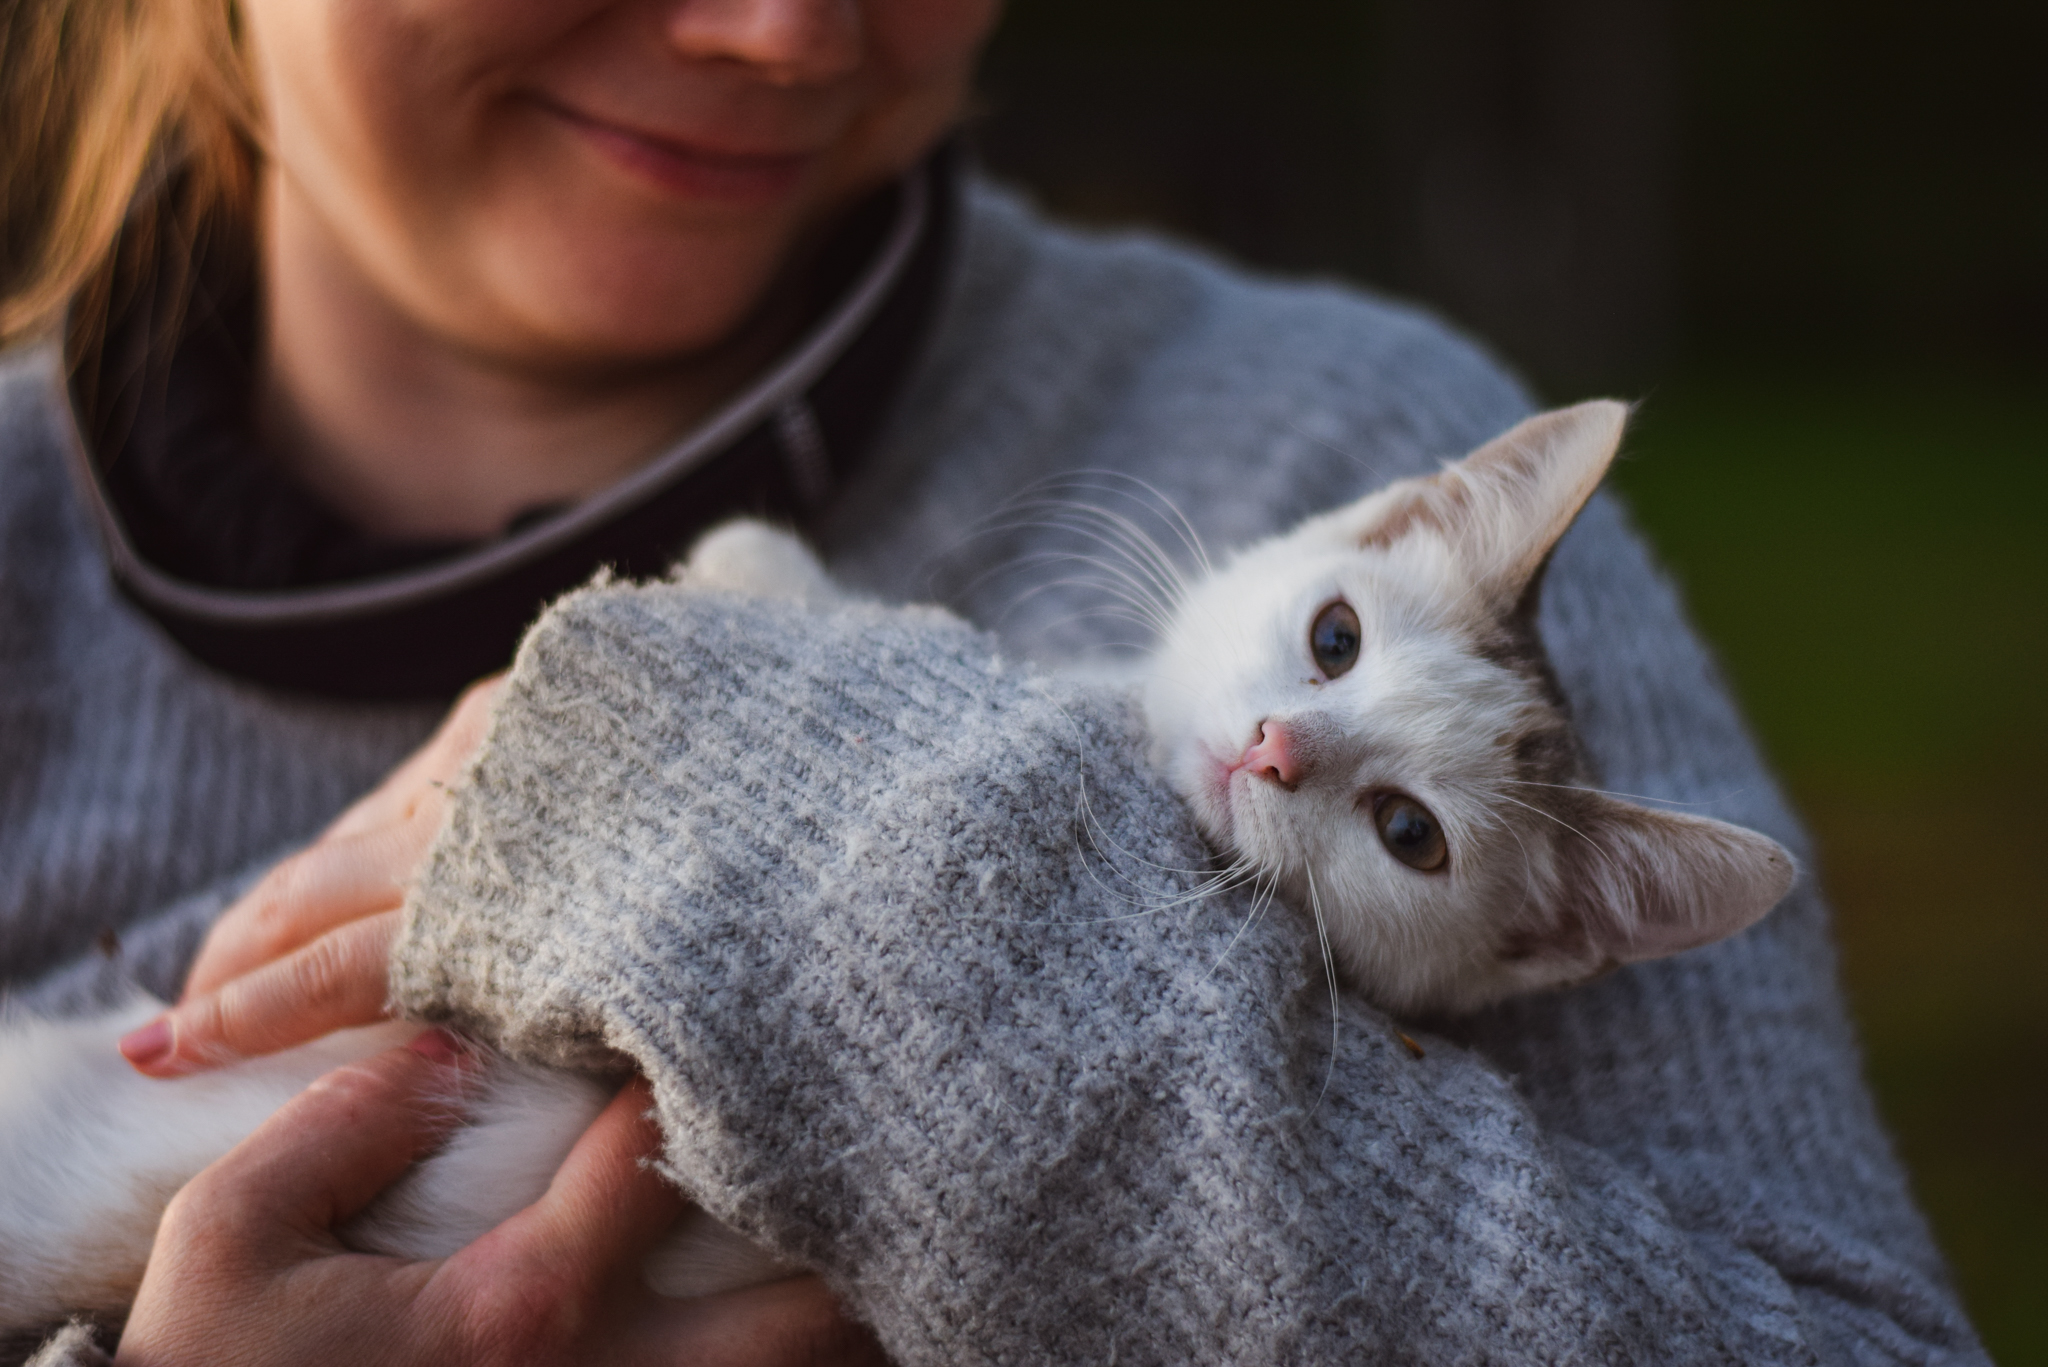 Finnish ways to connect with nature and yourself by spending time with animals